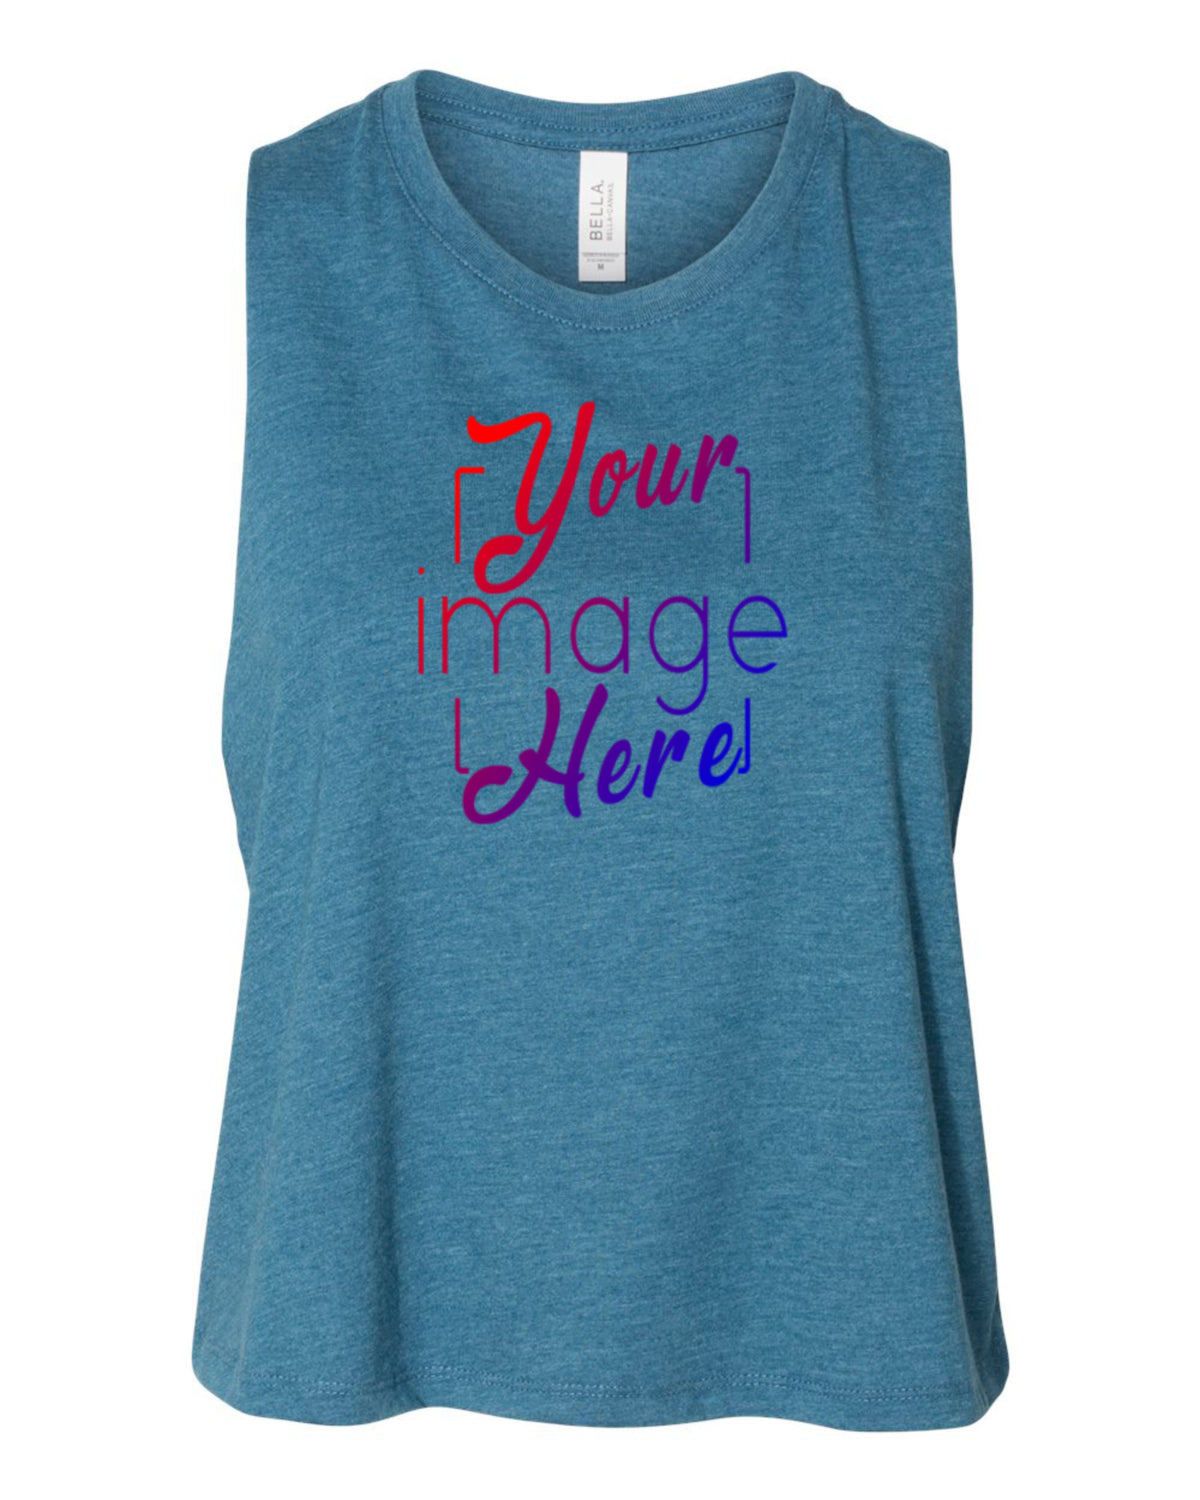 Front Image of Women's Racerback Tank Top for Custom Printing